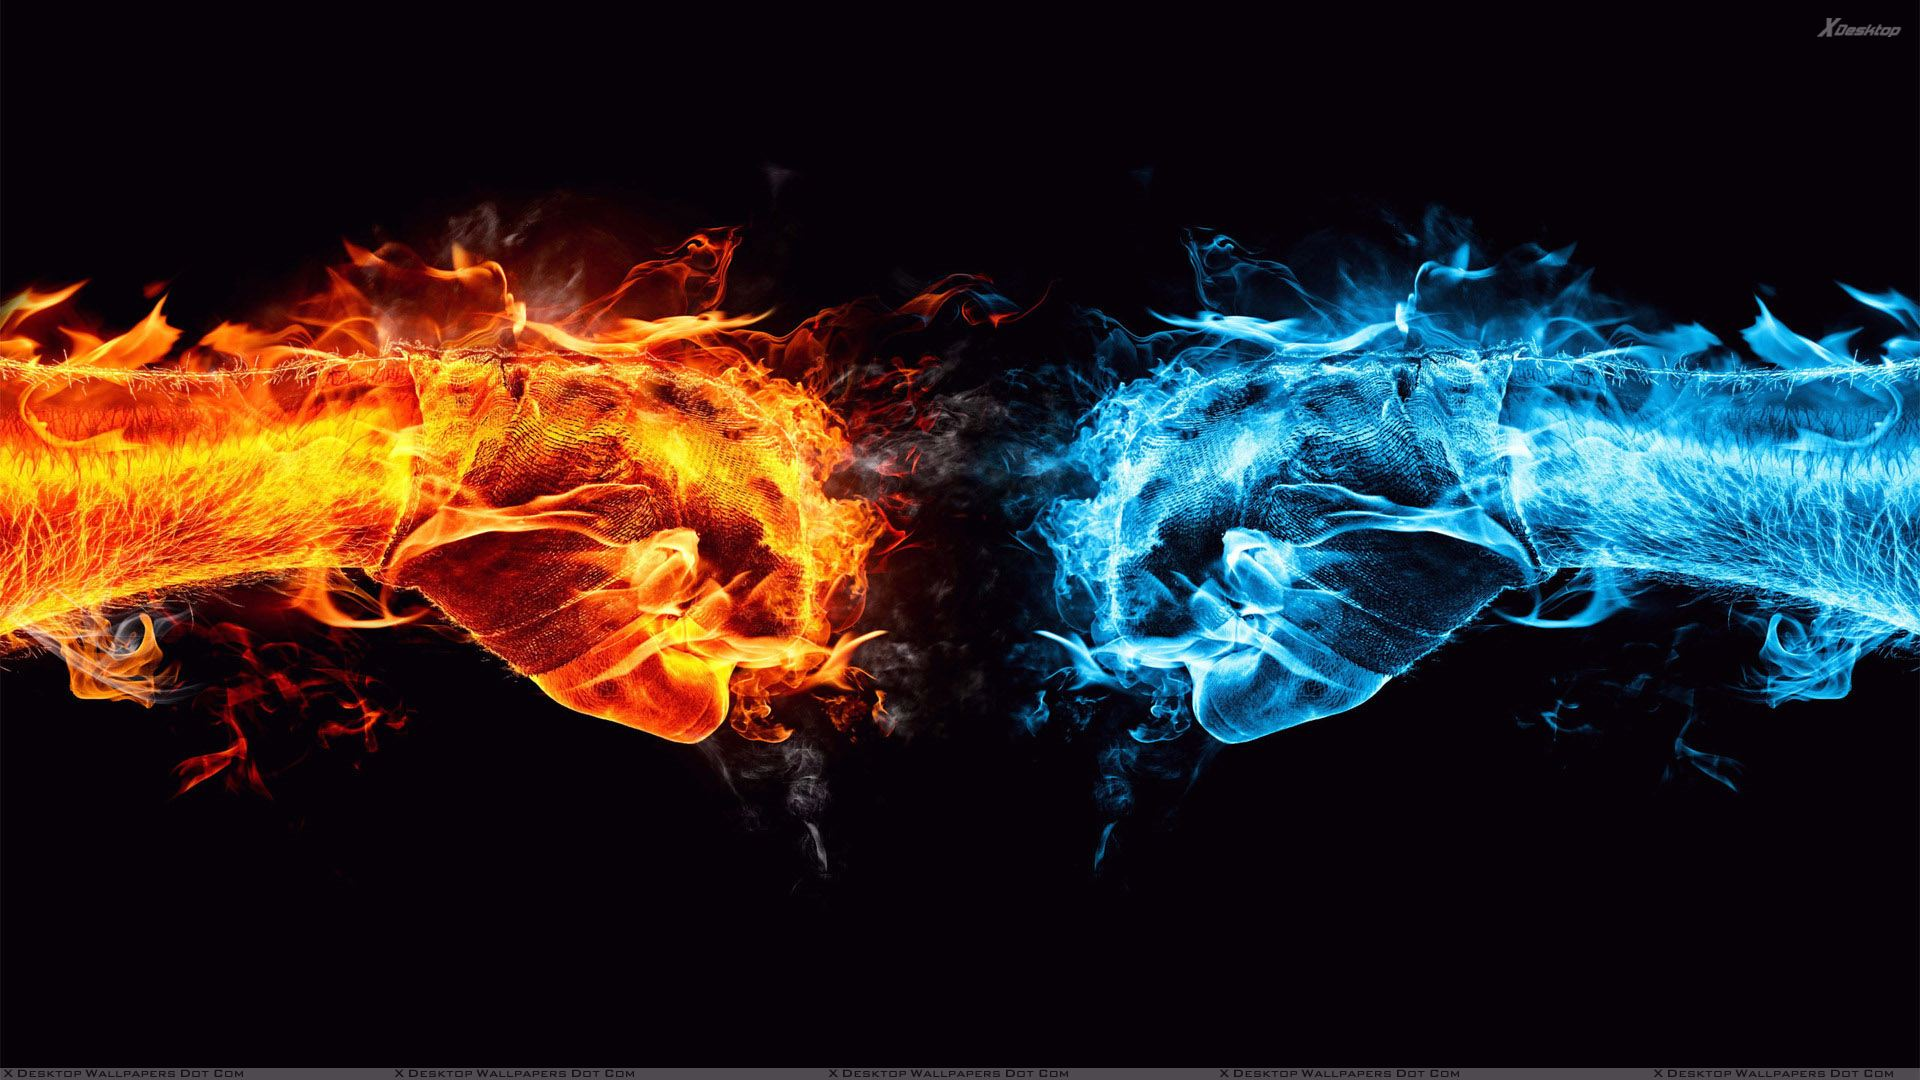 Cool vs hot fists on black background wallpaper you are viewing wallpaper voltagebd Gallery